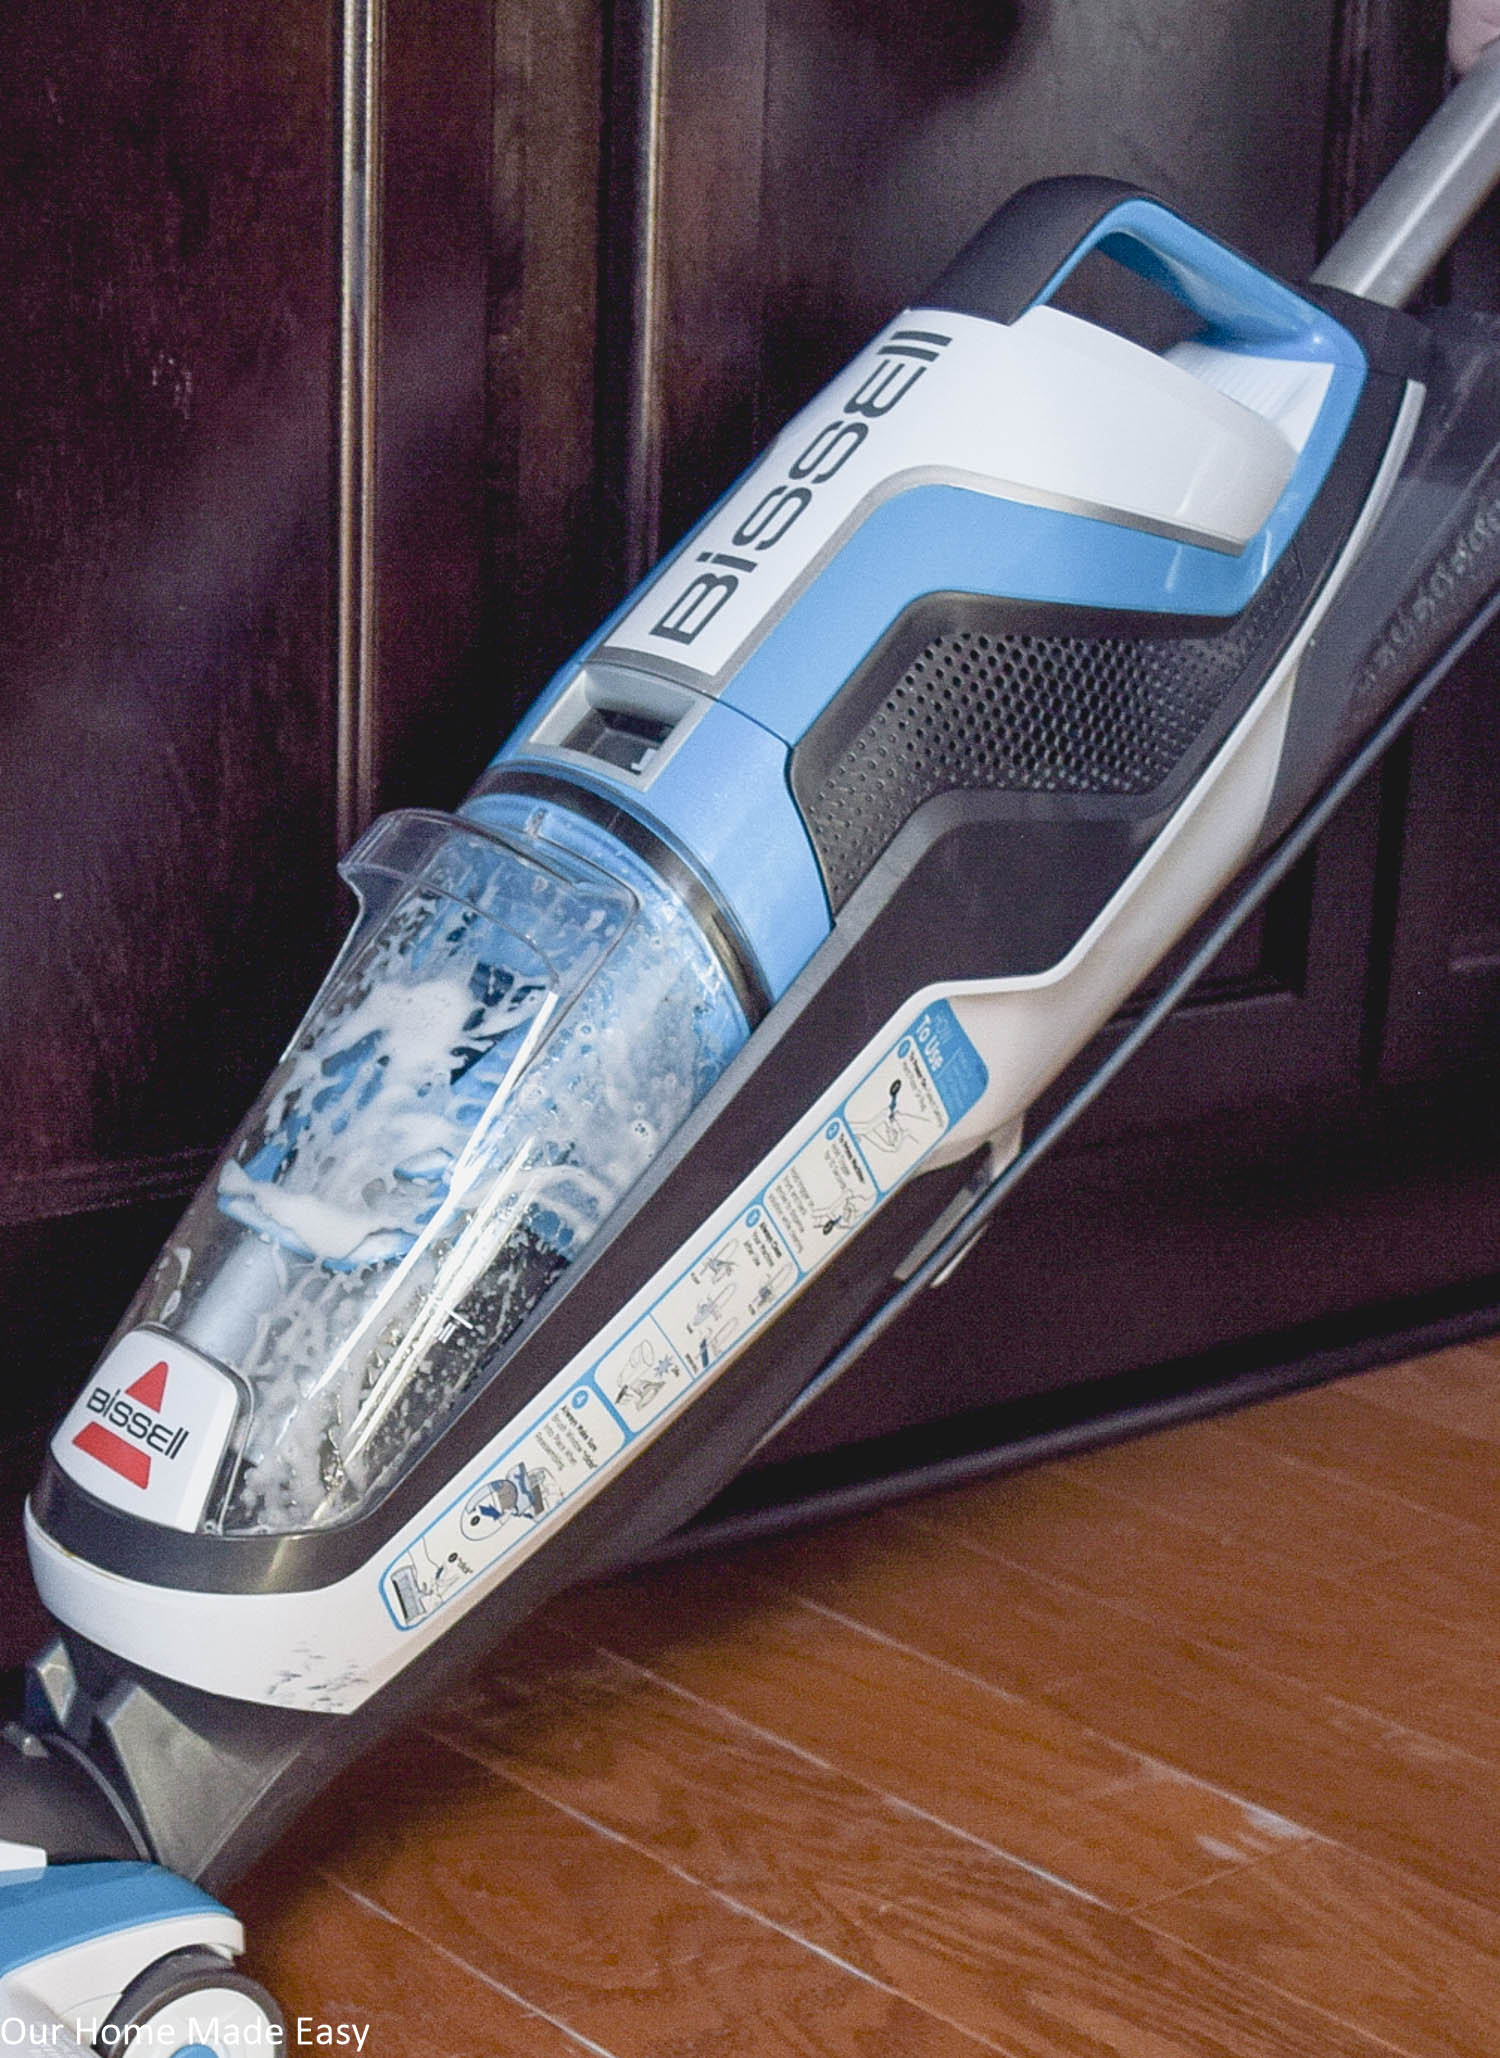 The Bissell CrossWave is the easiest way to clean your floors! You only need one machine for both carpet and hardwood or tile floors!